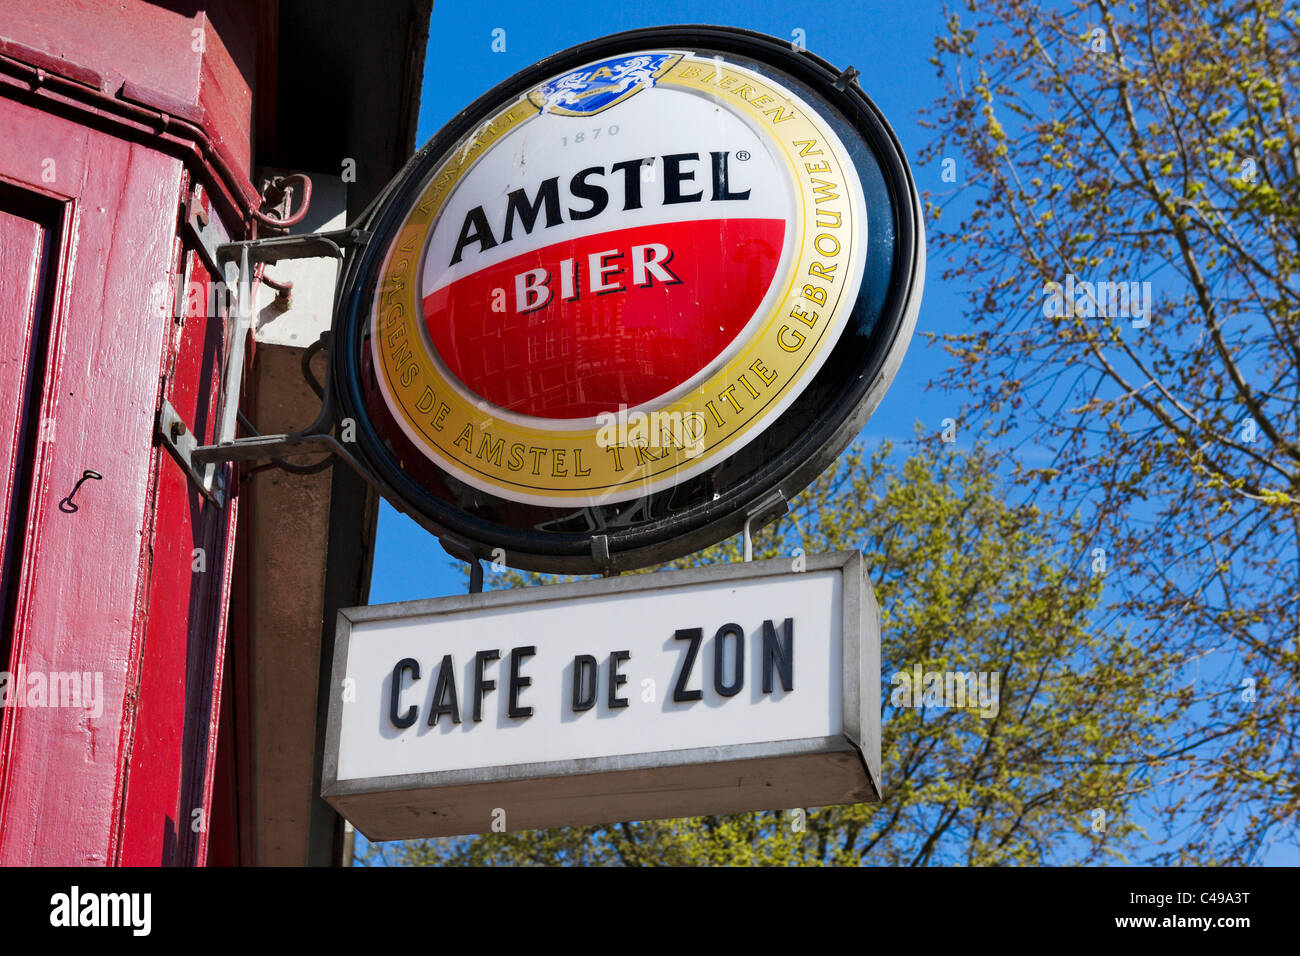 Sign for Amstel beer outside a bar in the red light district of Amsterdam, Netherlands - Stock Image